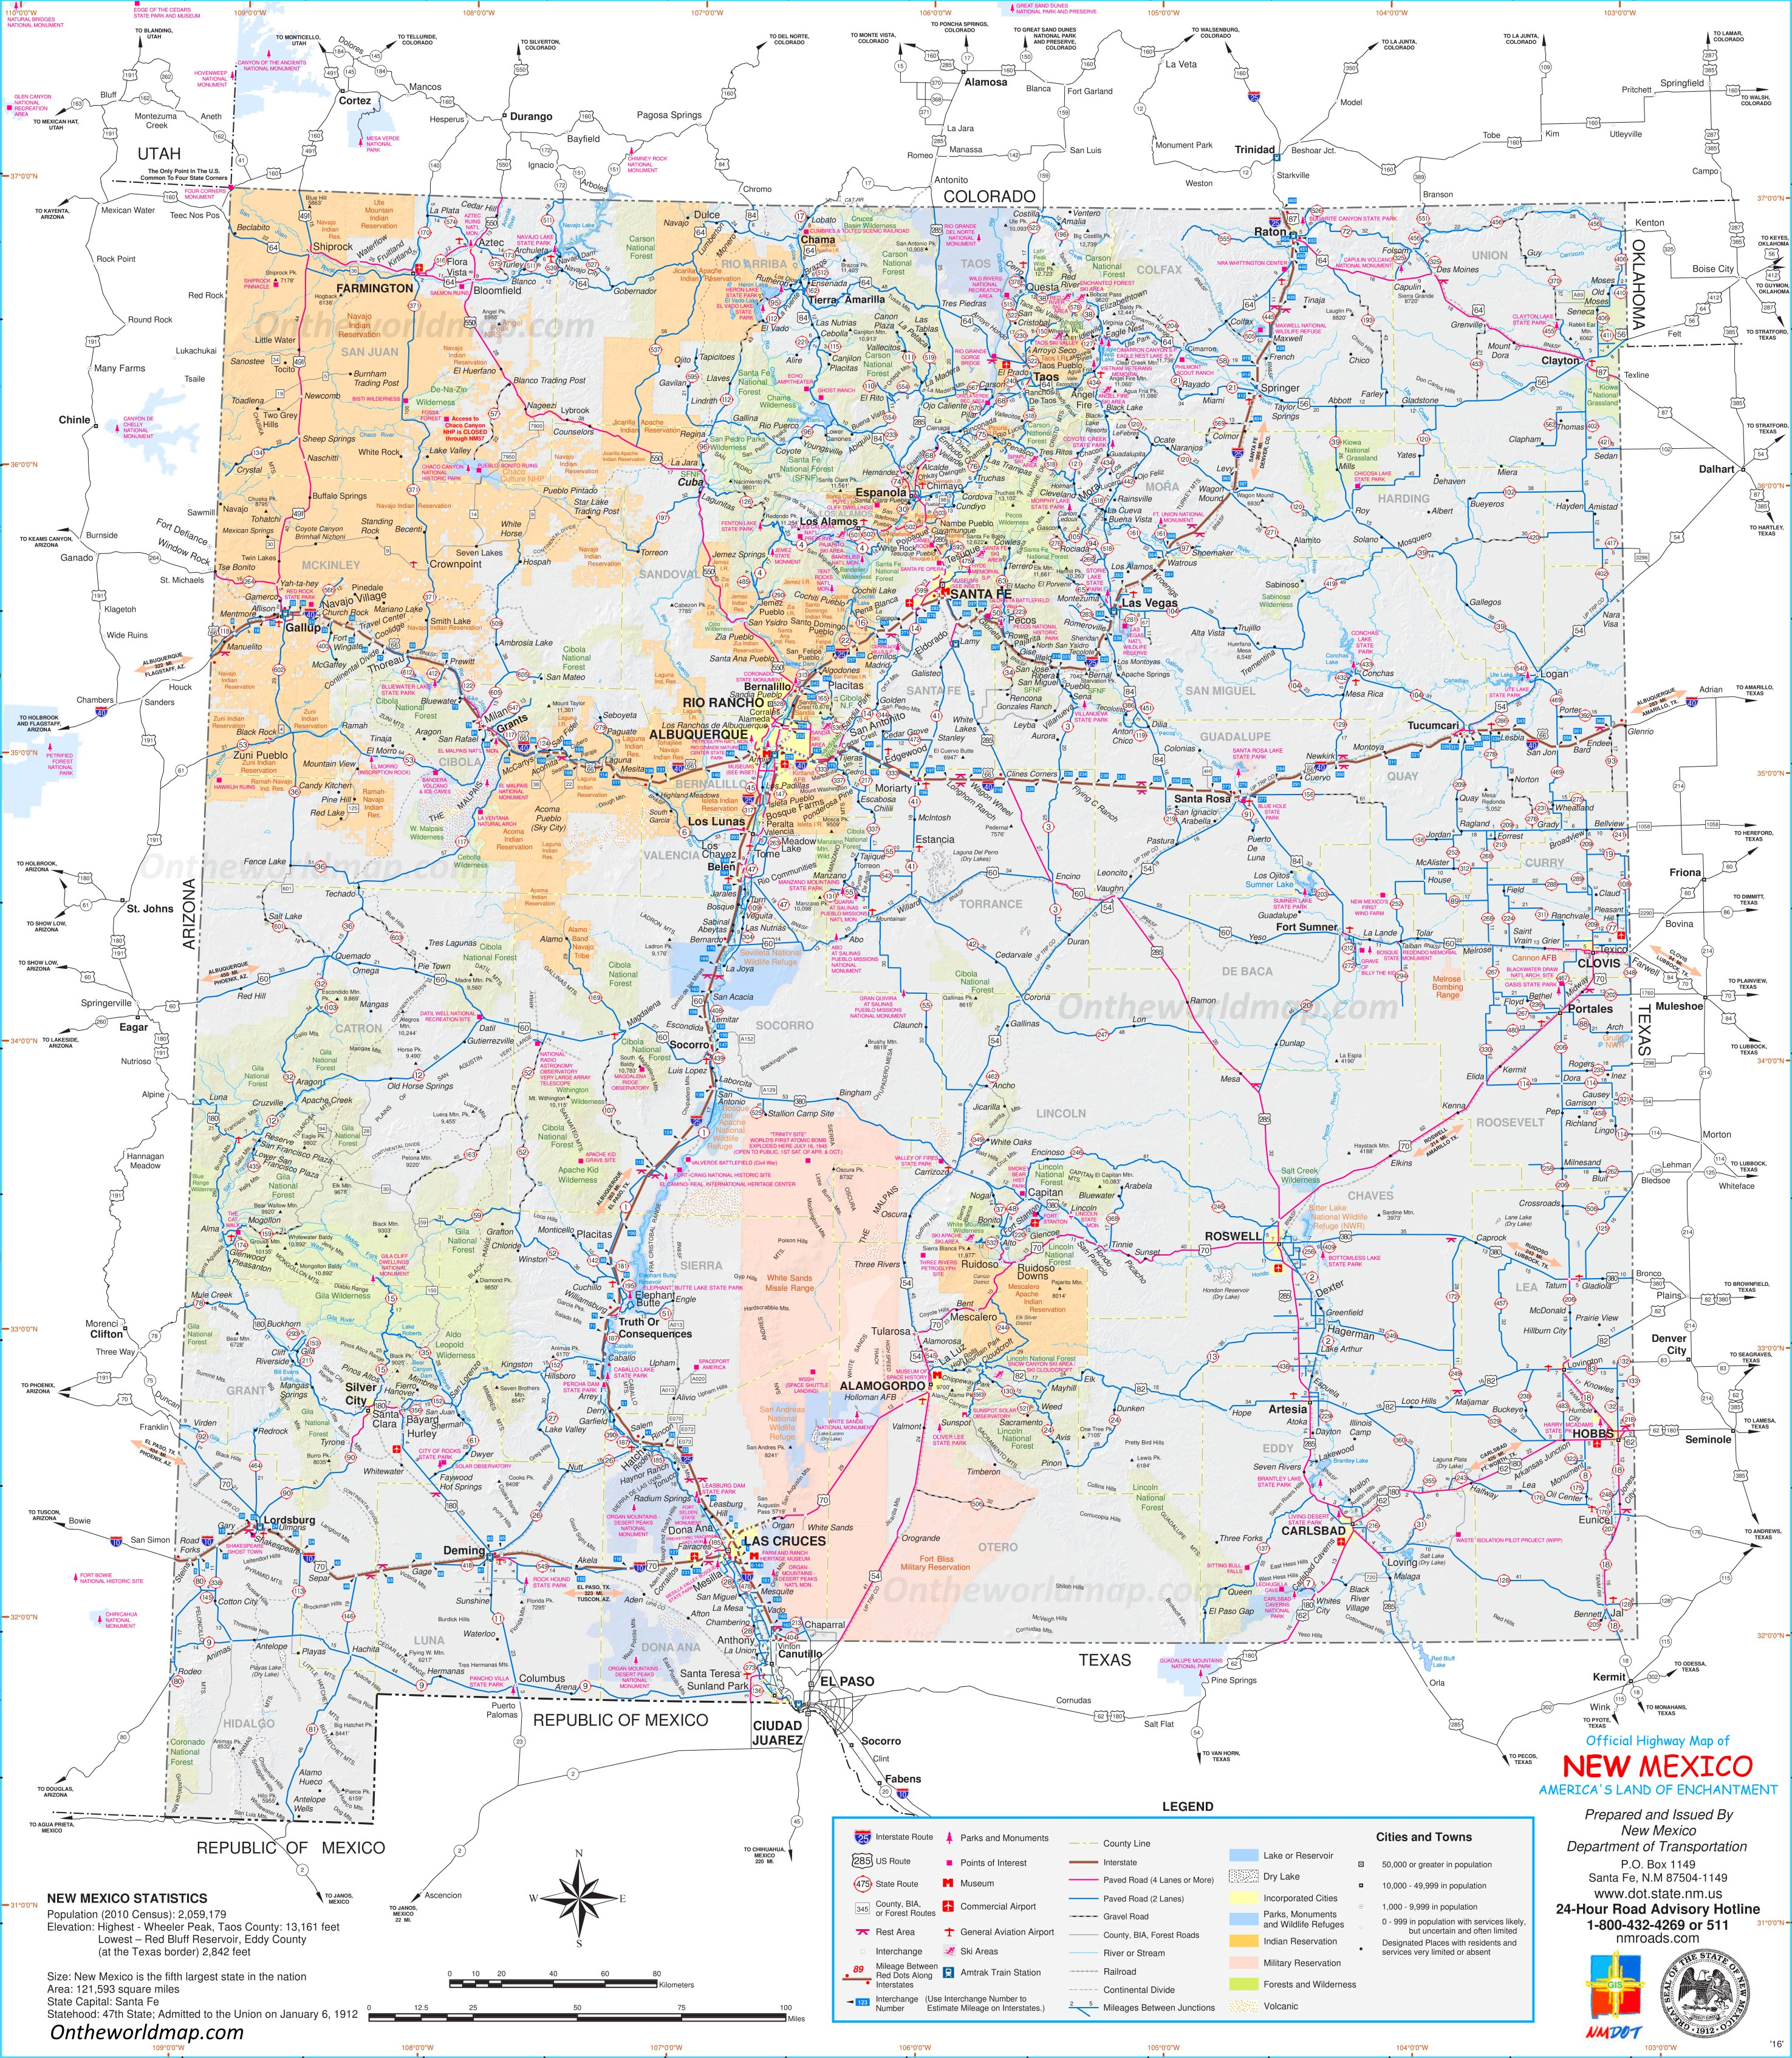 Large Detailed Tourist Map Of New Mexico With Cities And Towns - Us map new mexico